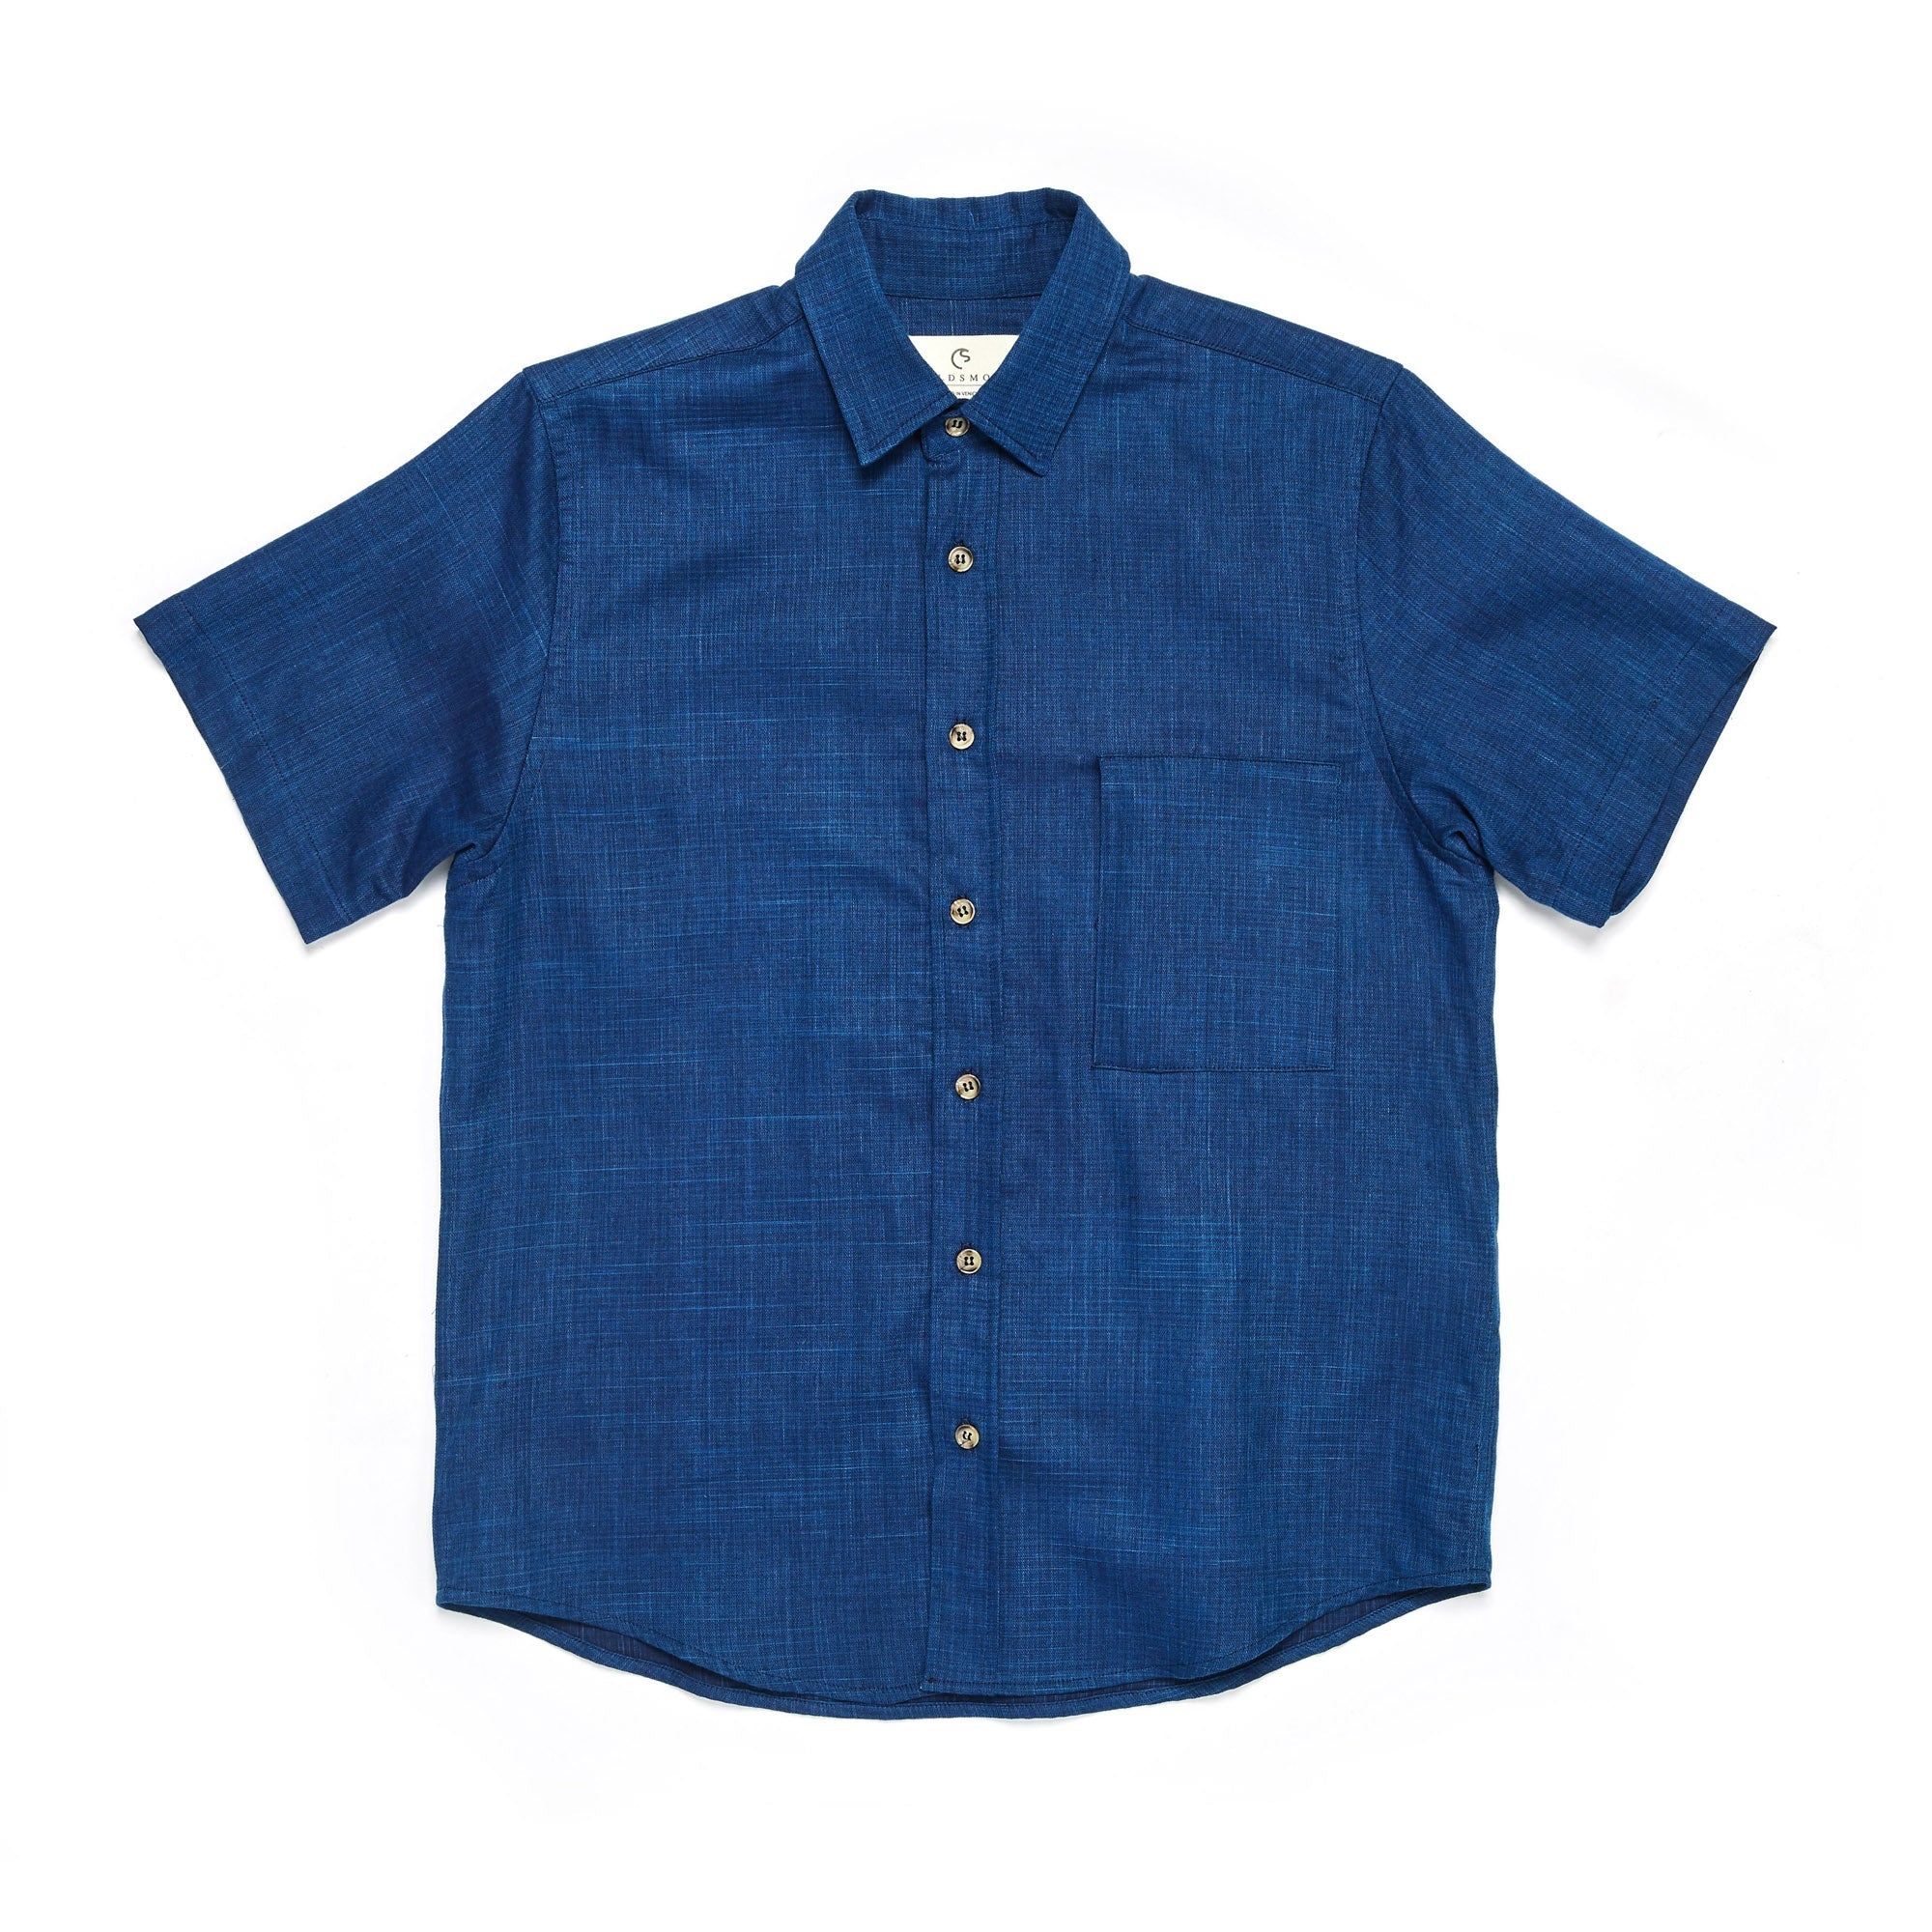 Kaiyo Linen Button Up - Indigo